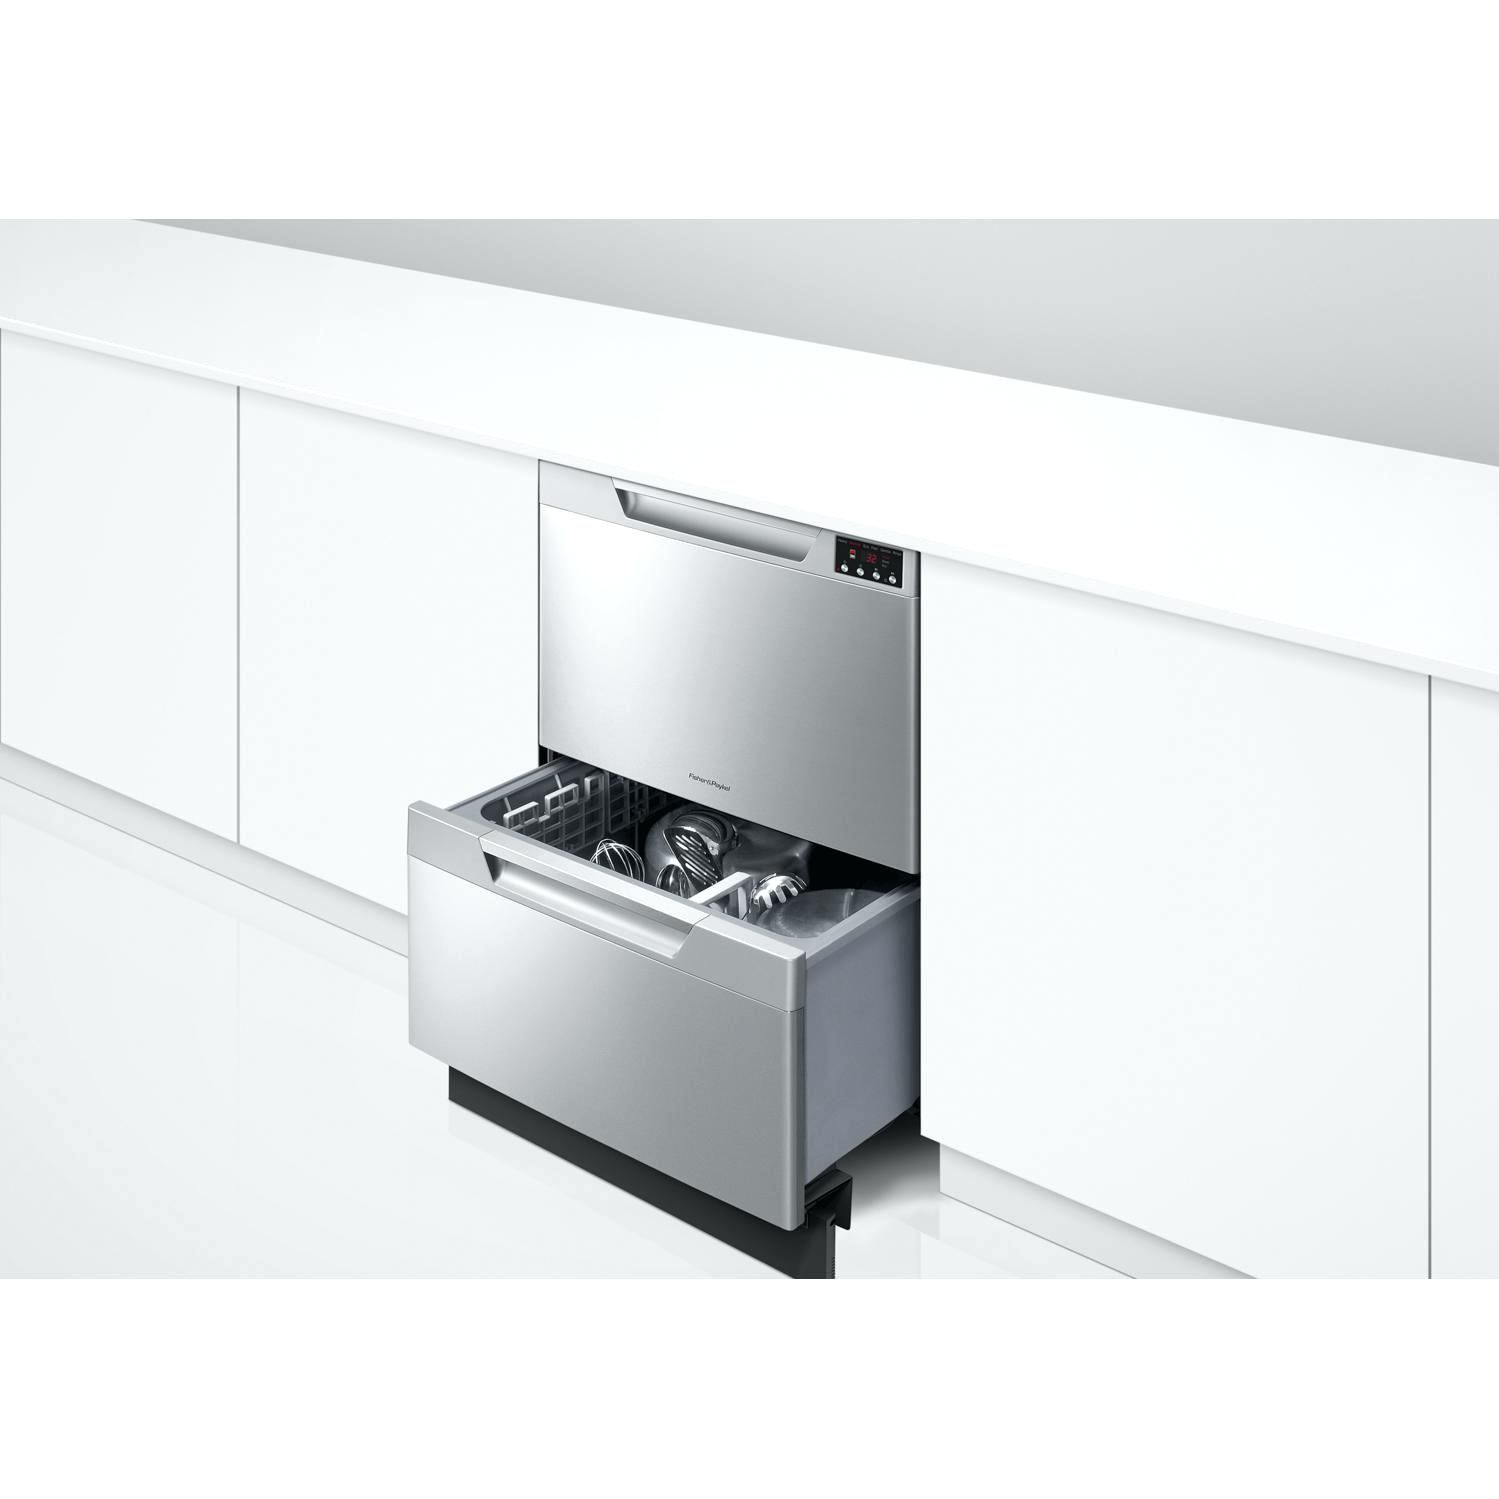 Fisher Paykel 2 Drawer Dishwasher Troubleshooting F1